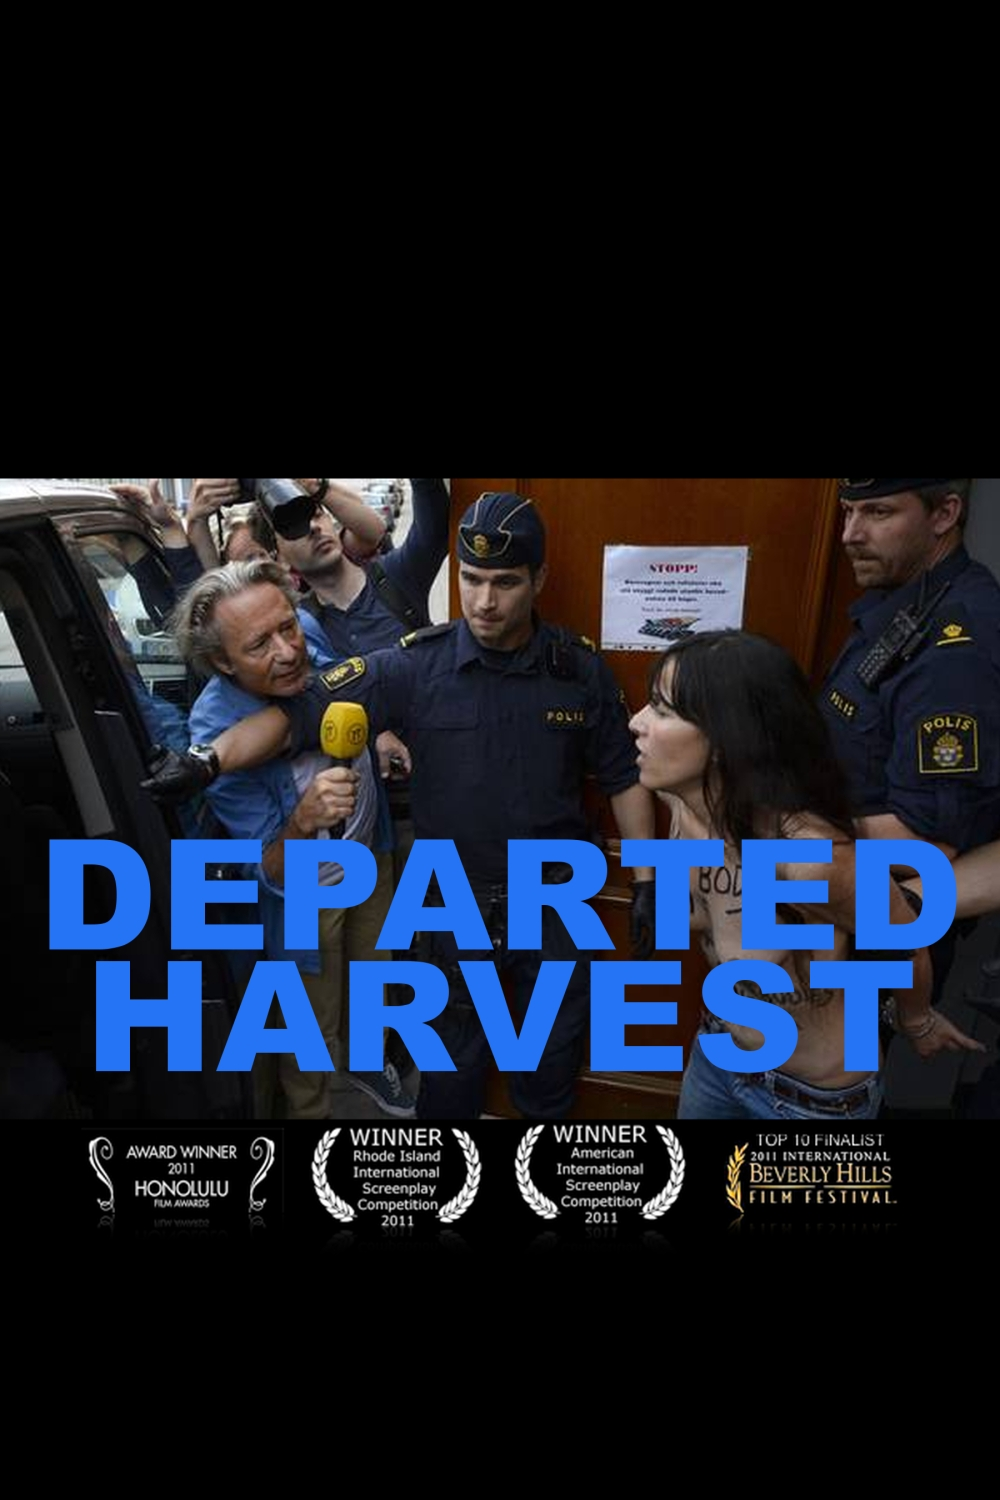 DEPARTED HARVEST POSTER21